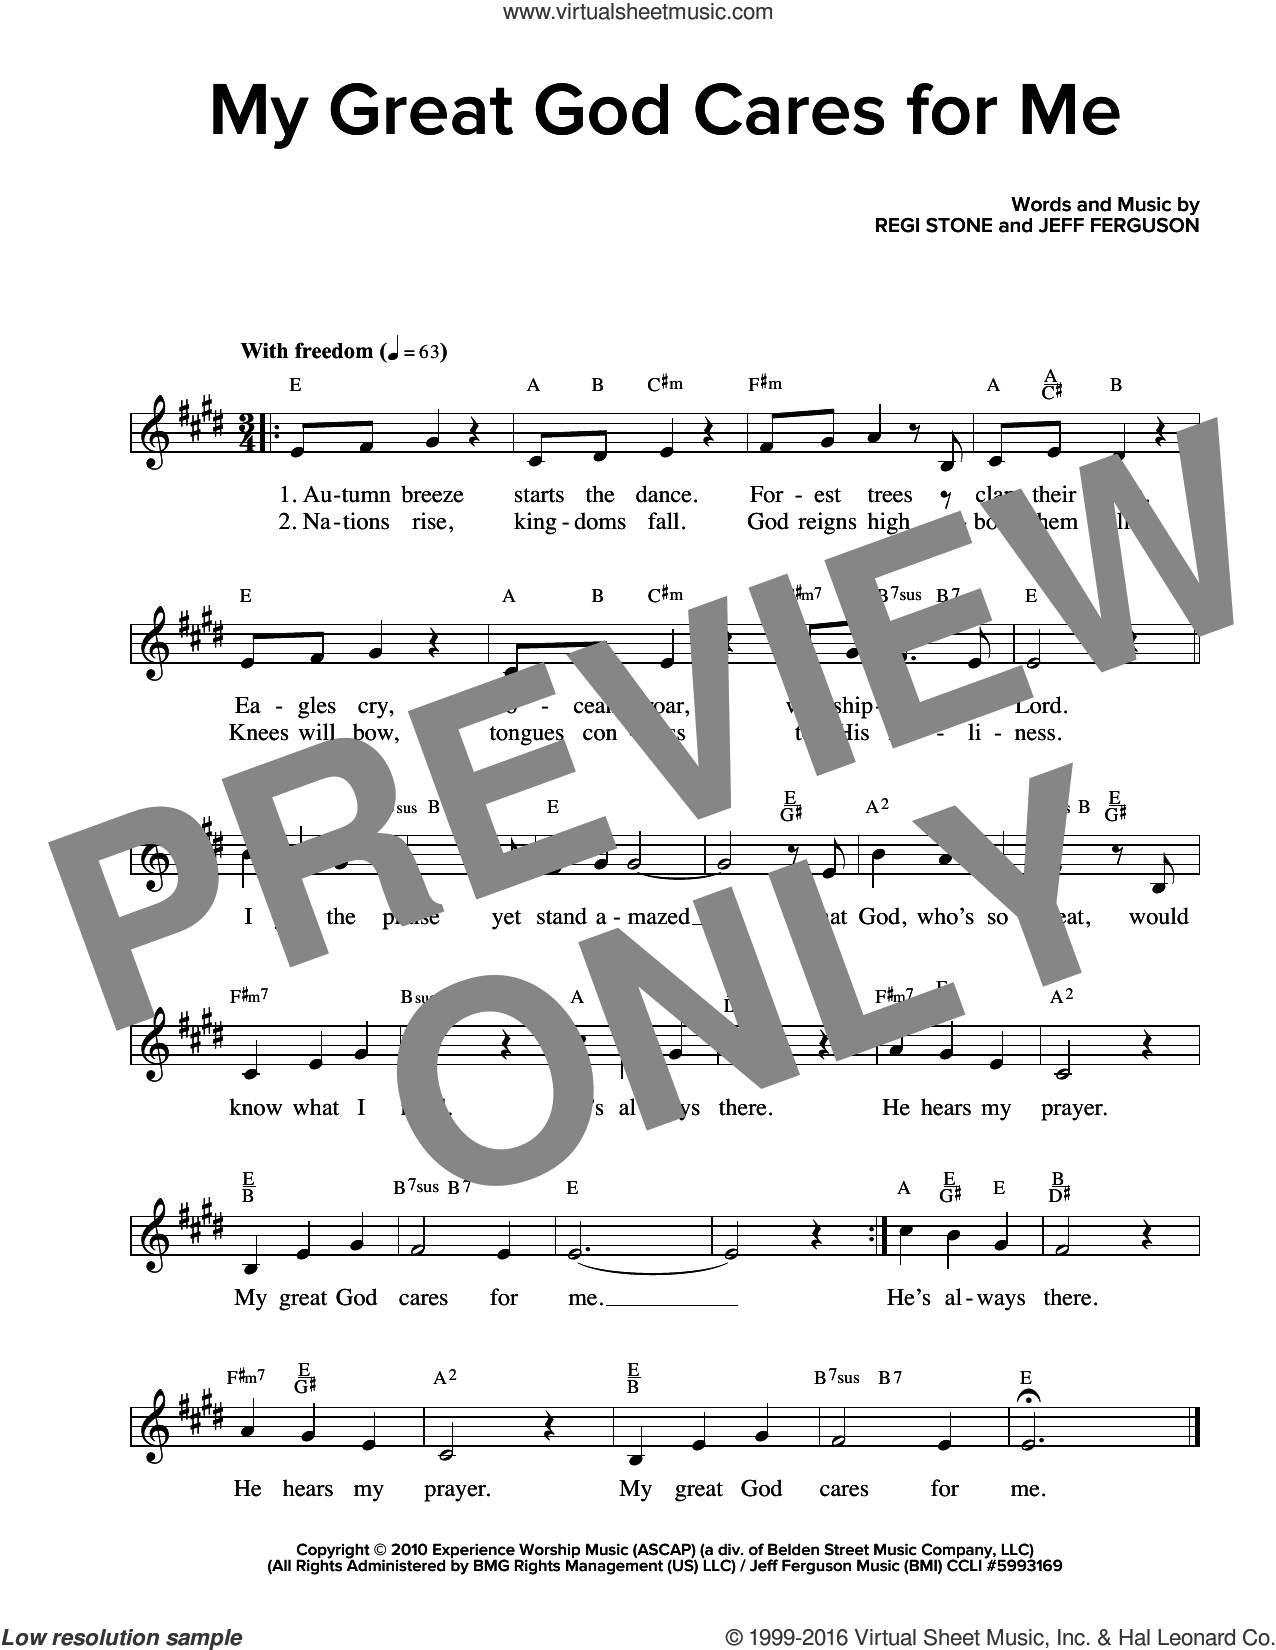 My Great God Cares For Me sheet music for voice and other instruments (fake book) , Jeff Ferguson and Regi Stone, intermediate skill level